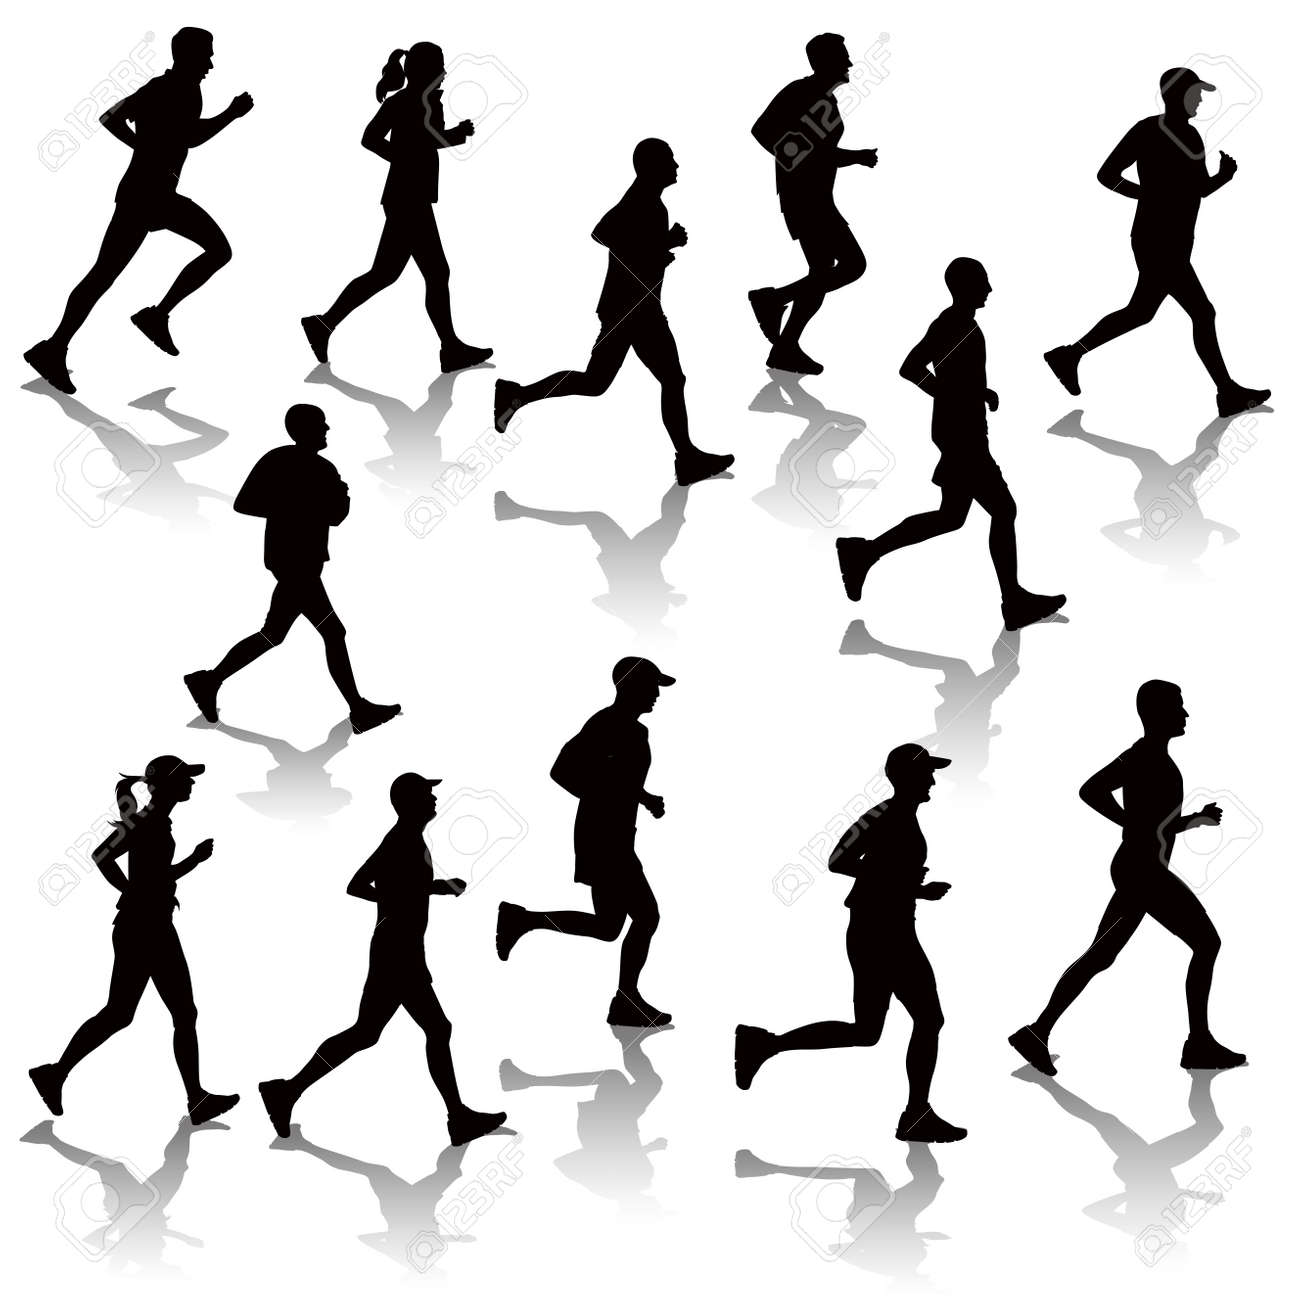 Collection of running people isolated on white. Vector illustration - 46081432